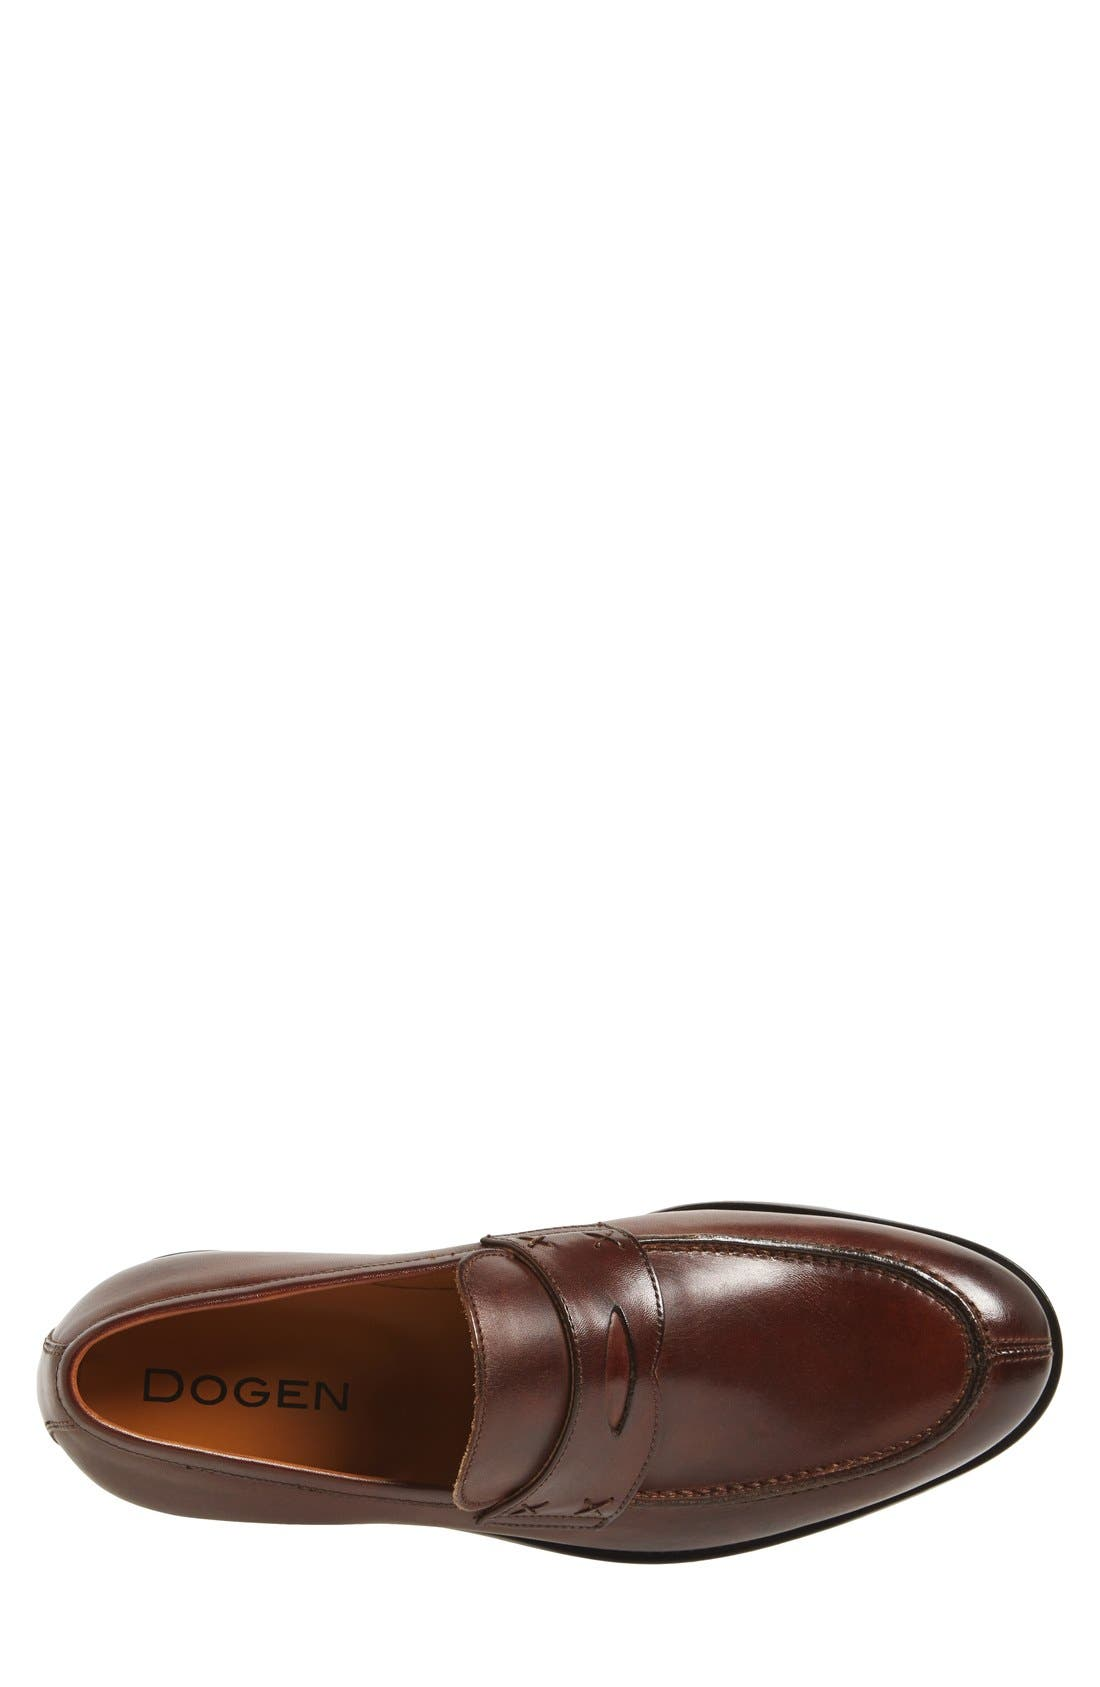 Alternate Image 3  - Dogen 'Vitello Crust' Penny Loafer (Men)